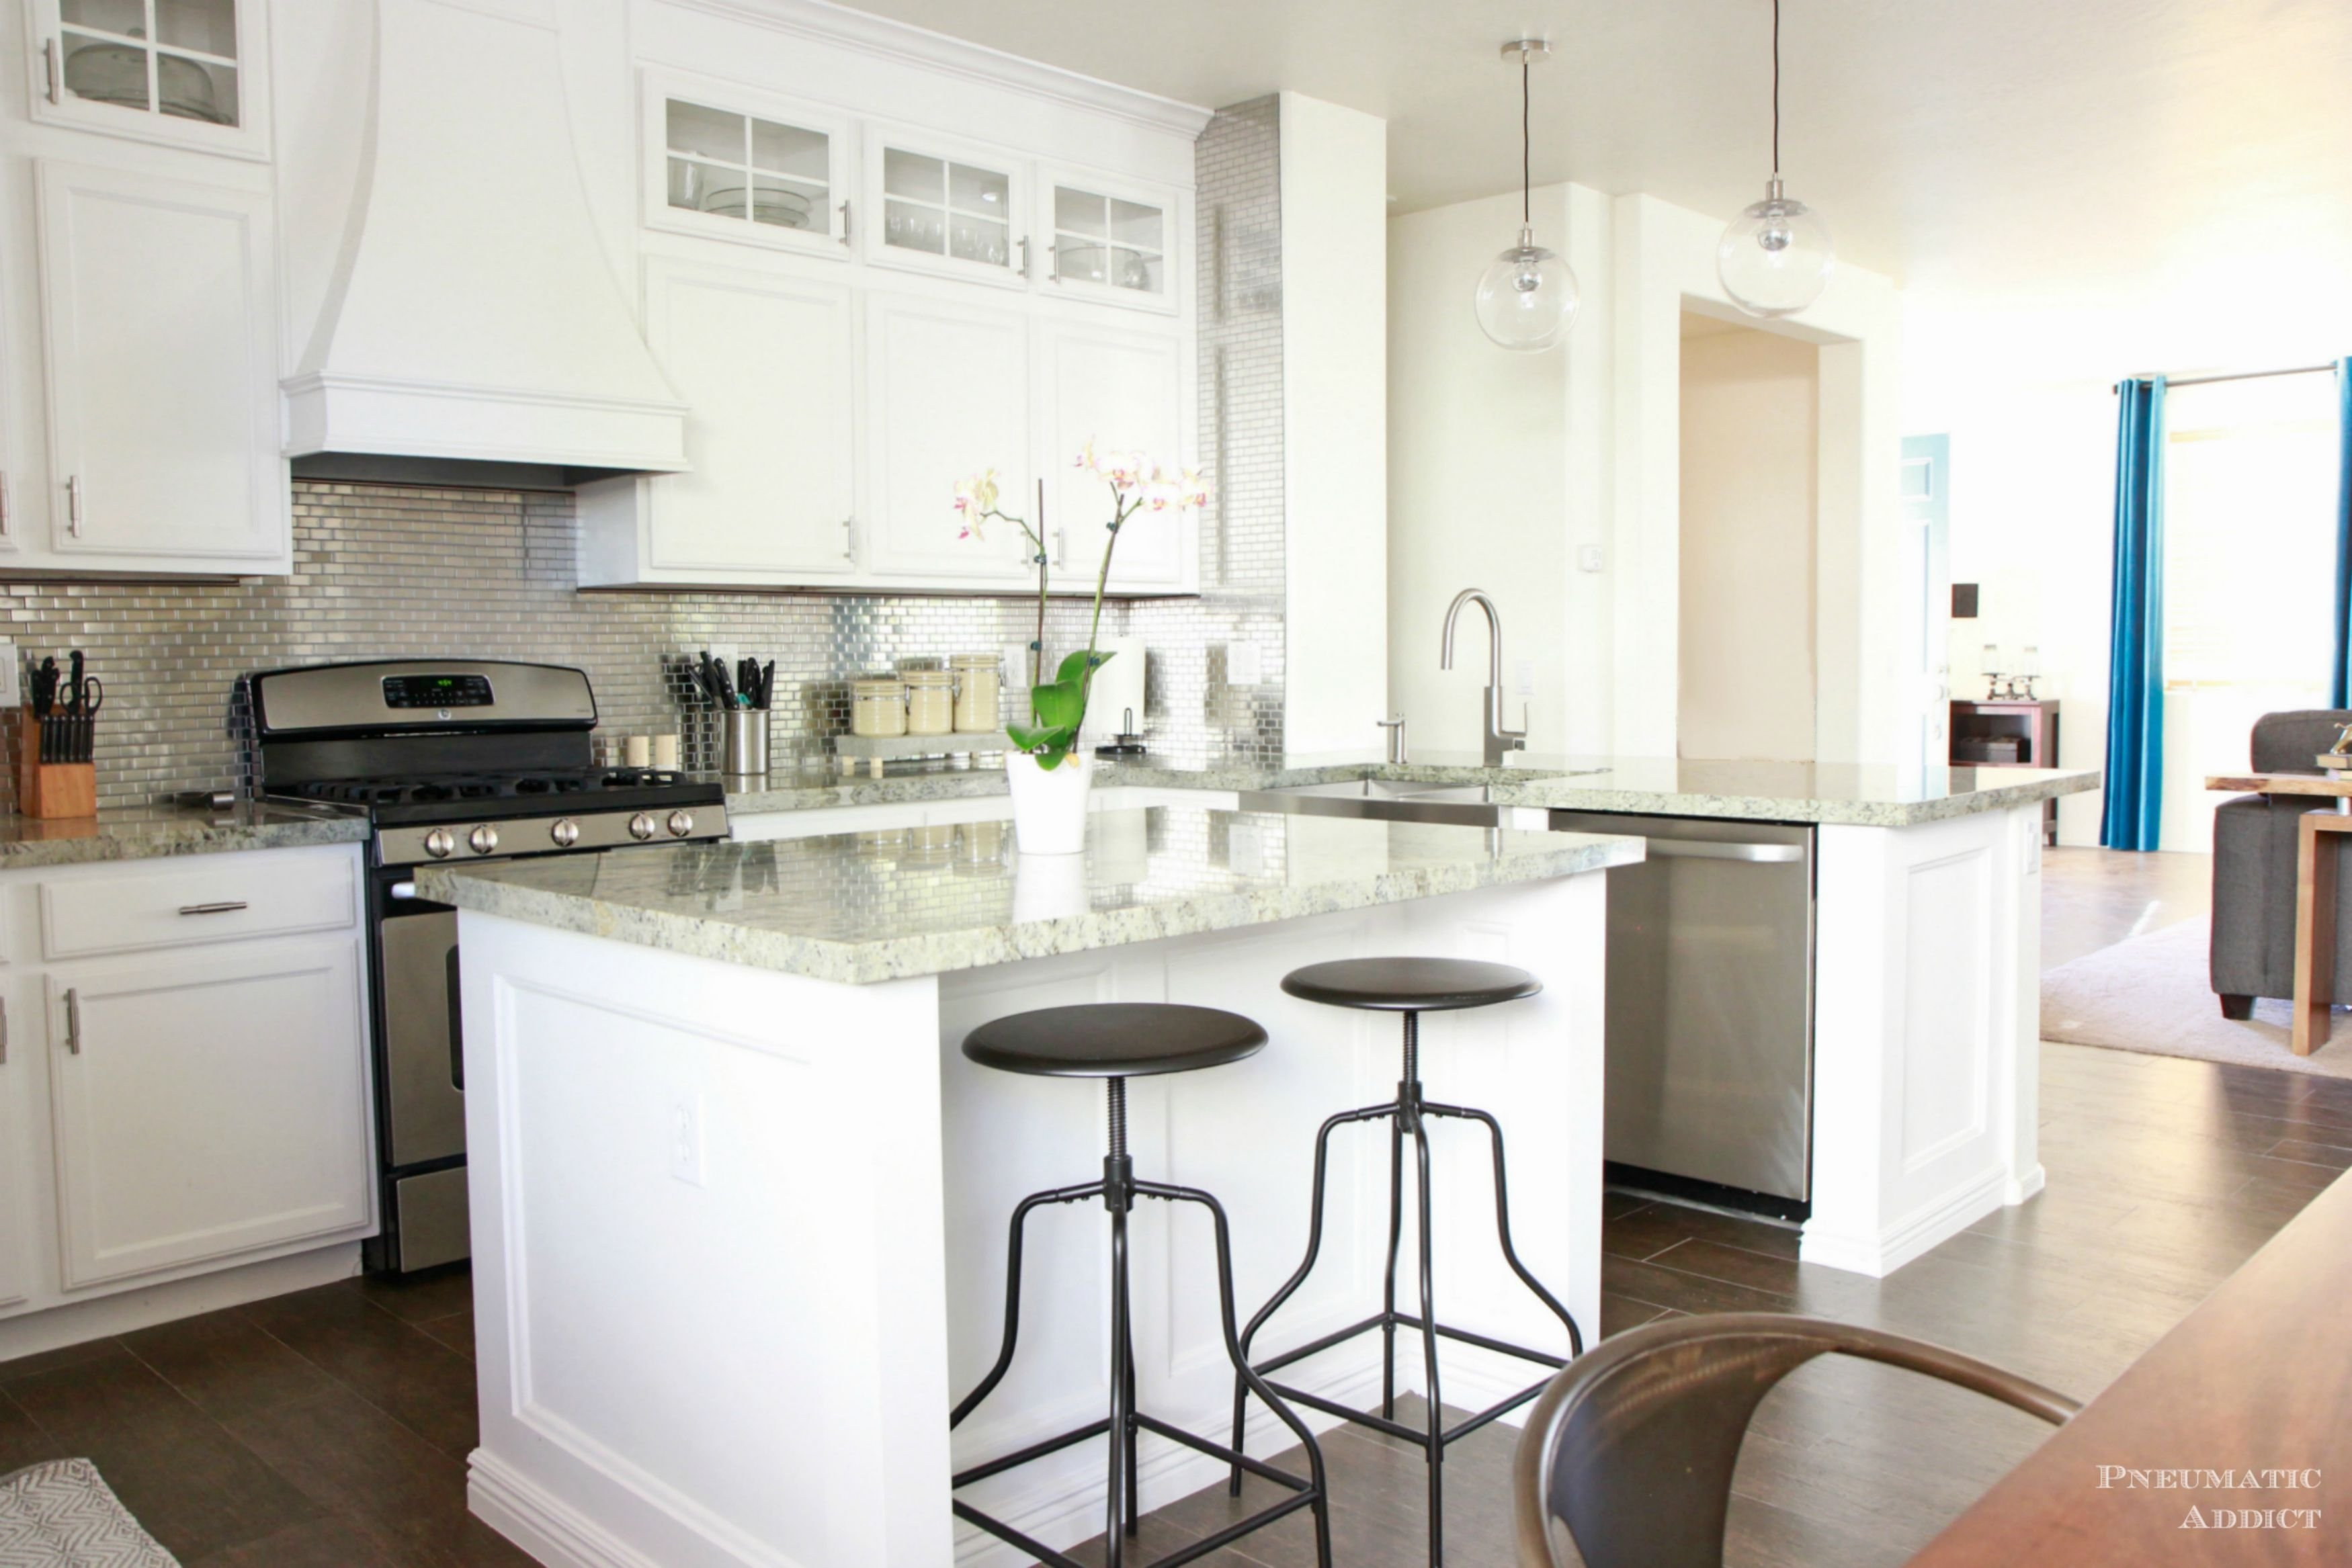 10 Gorgeous Kitchen Ideas With White Cabinets 11 best white kitchen cabinets design ideas for white cabinets 3 2020